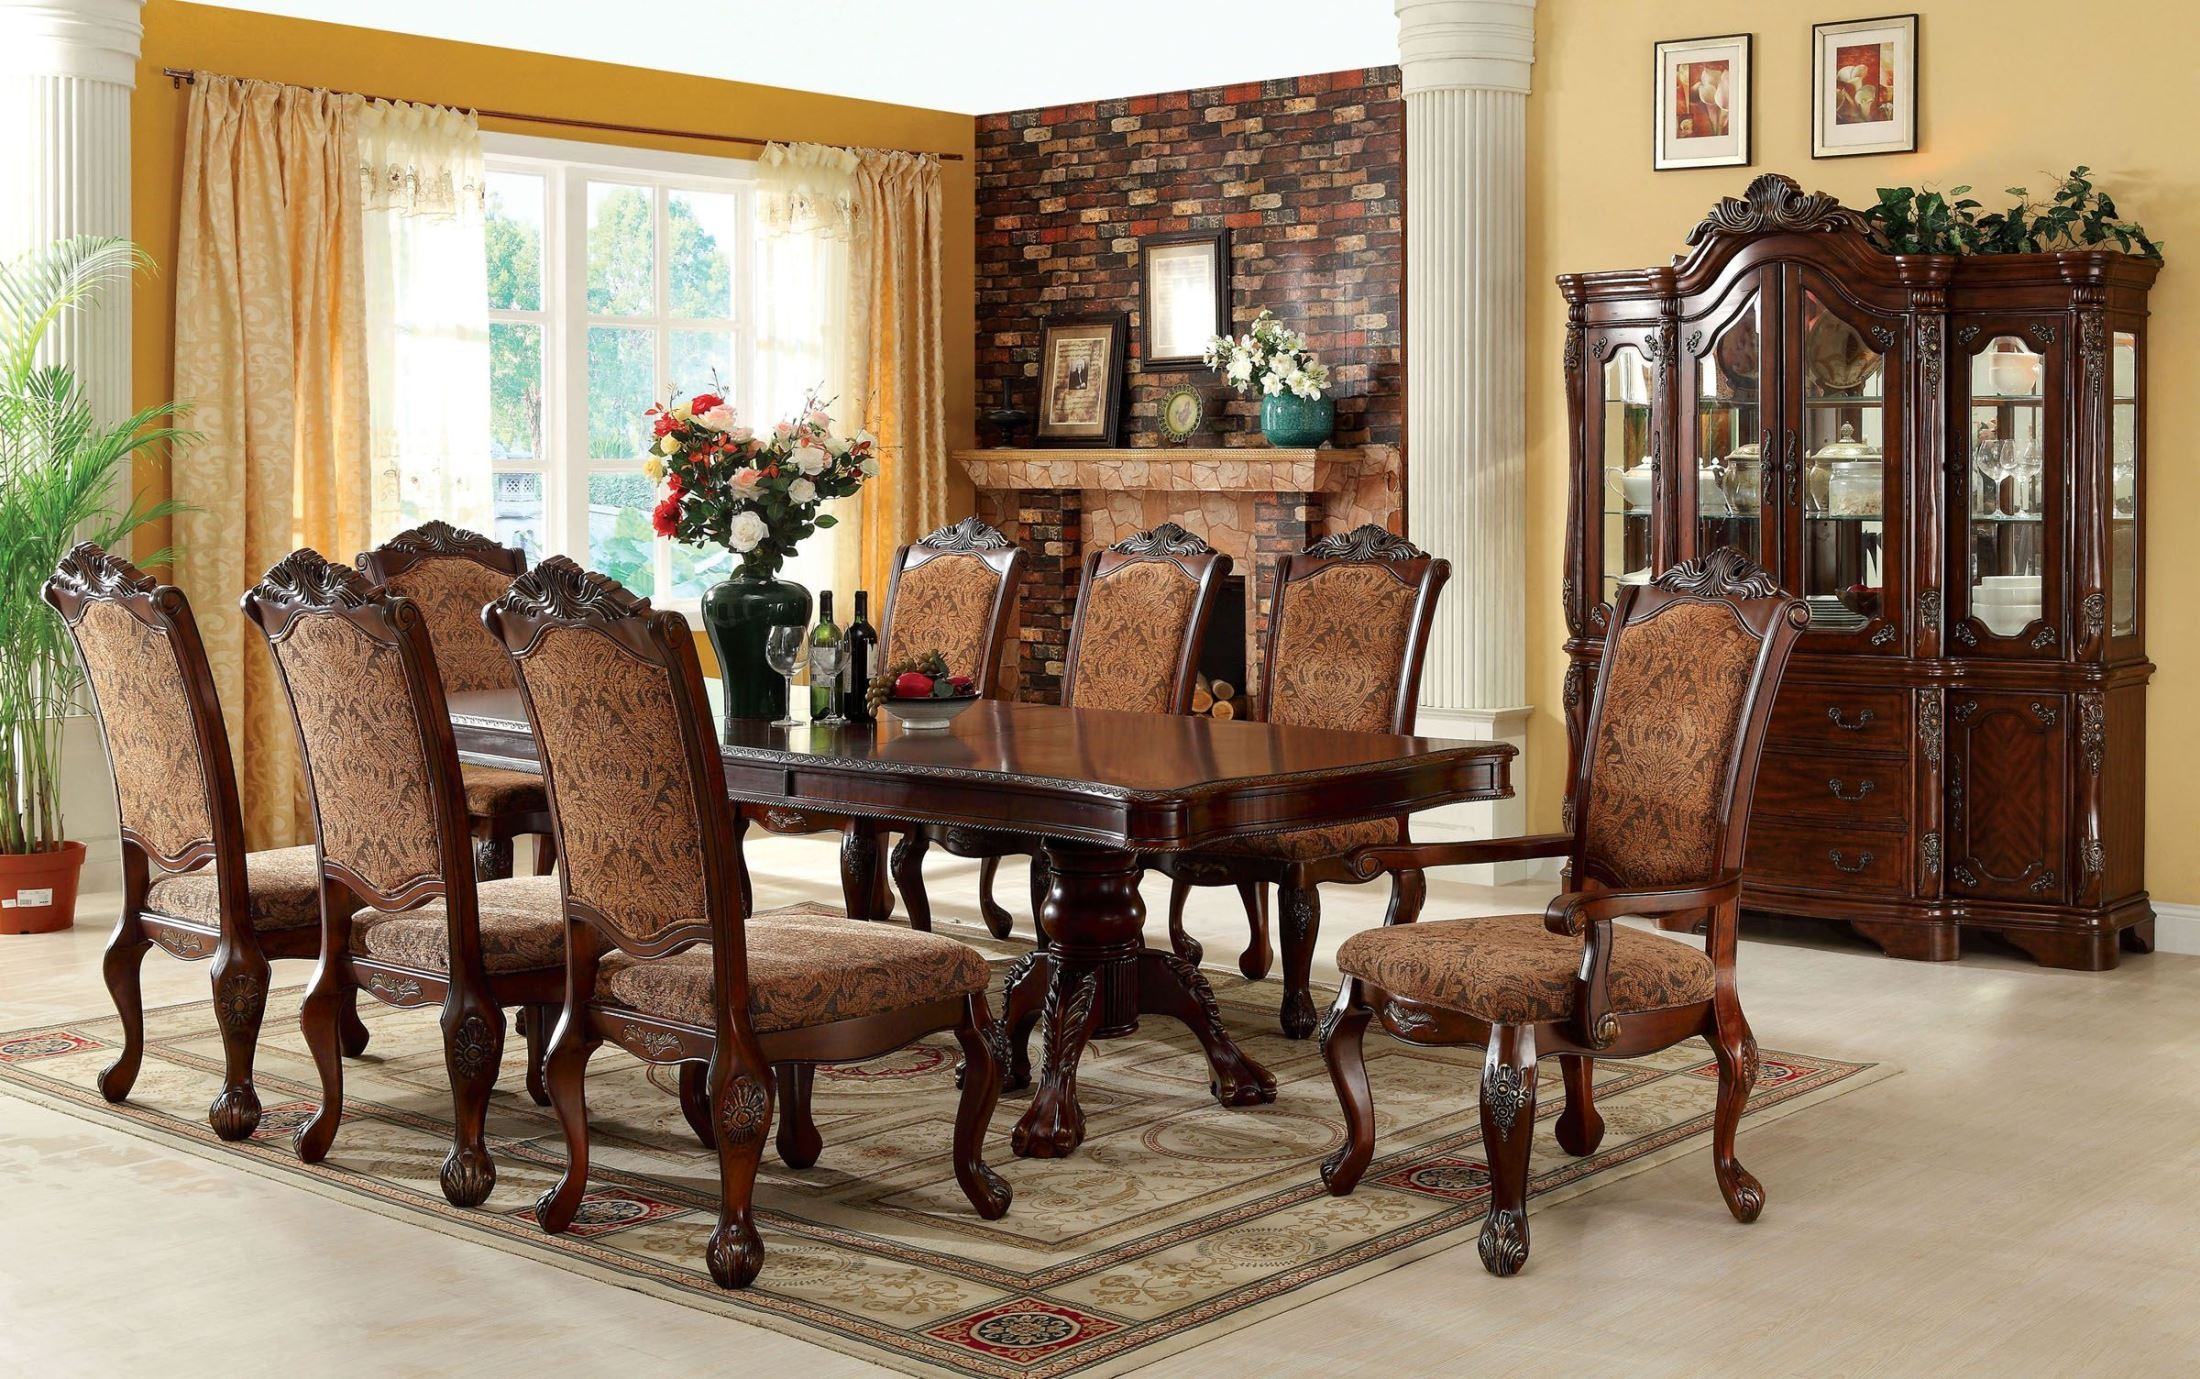 Cromwell Antique Cherry Formal Dining Room Set, CM3103T